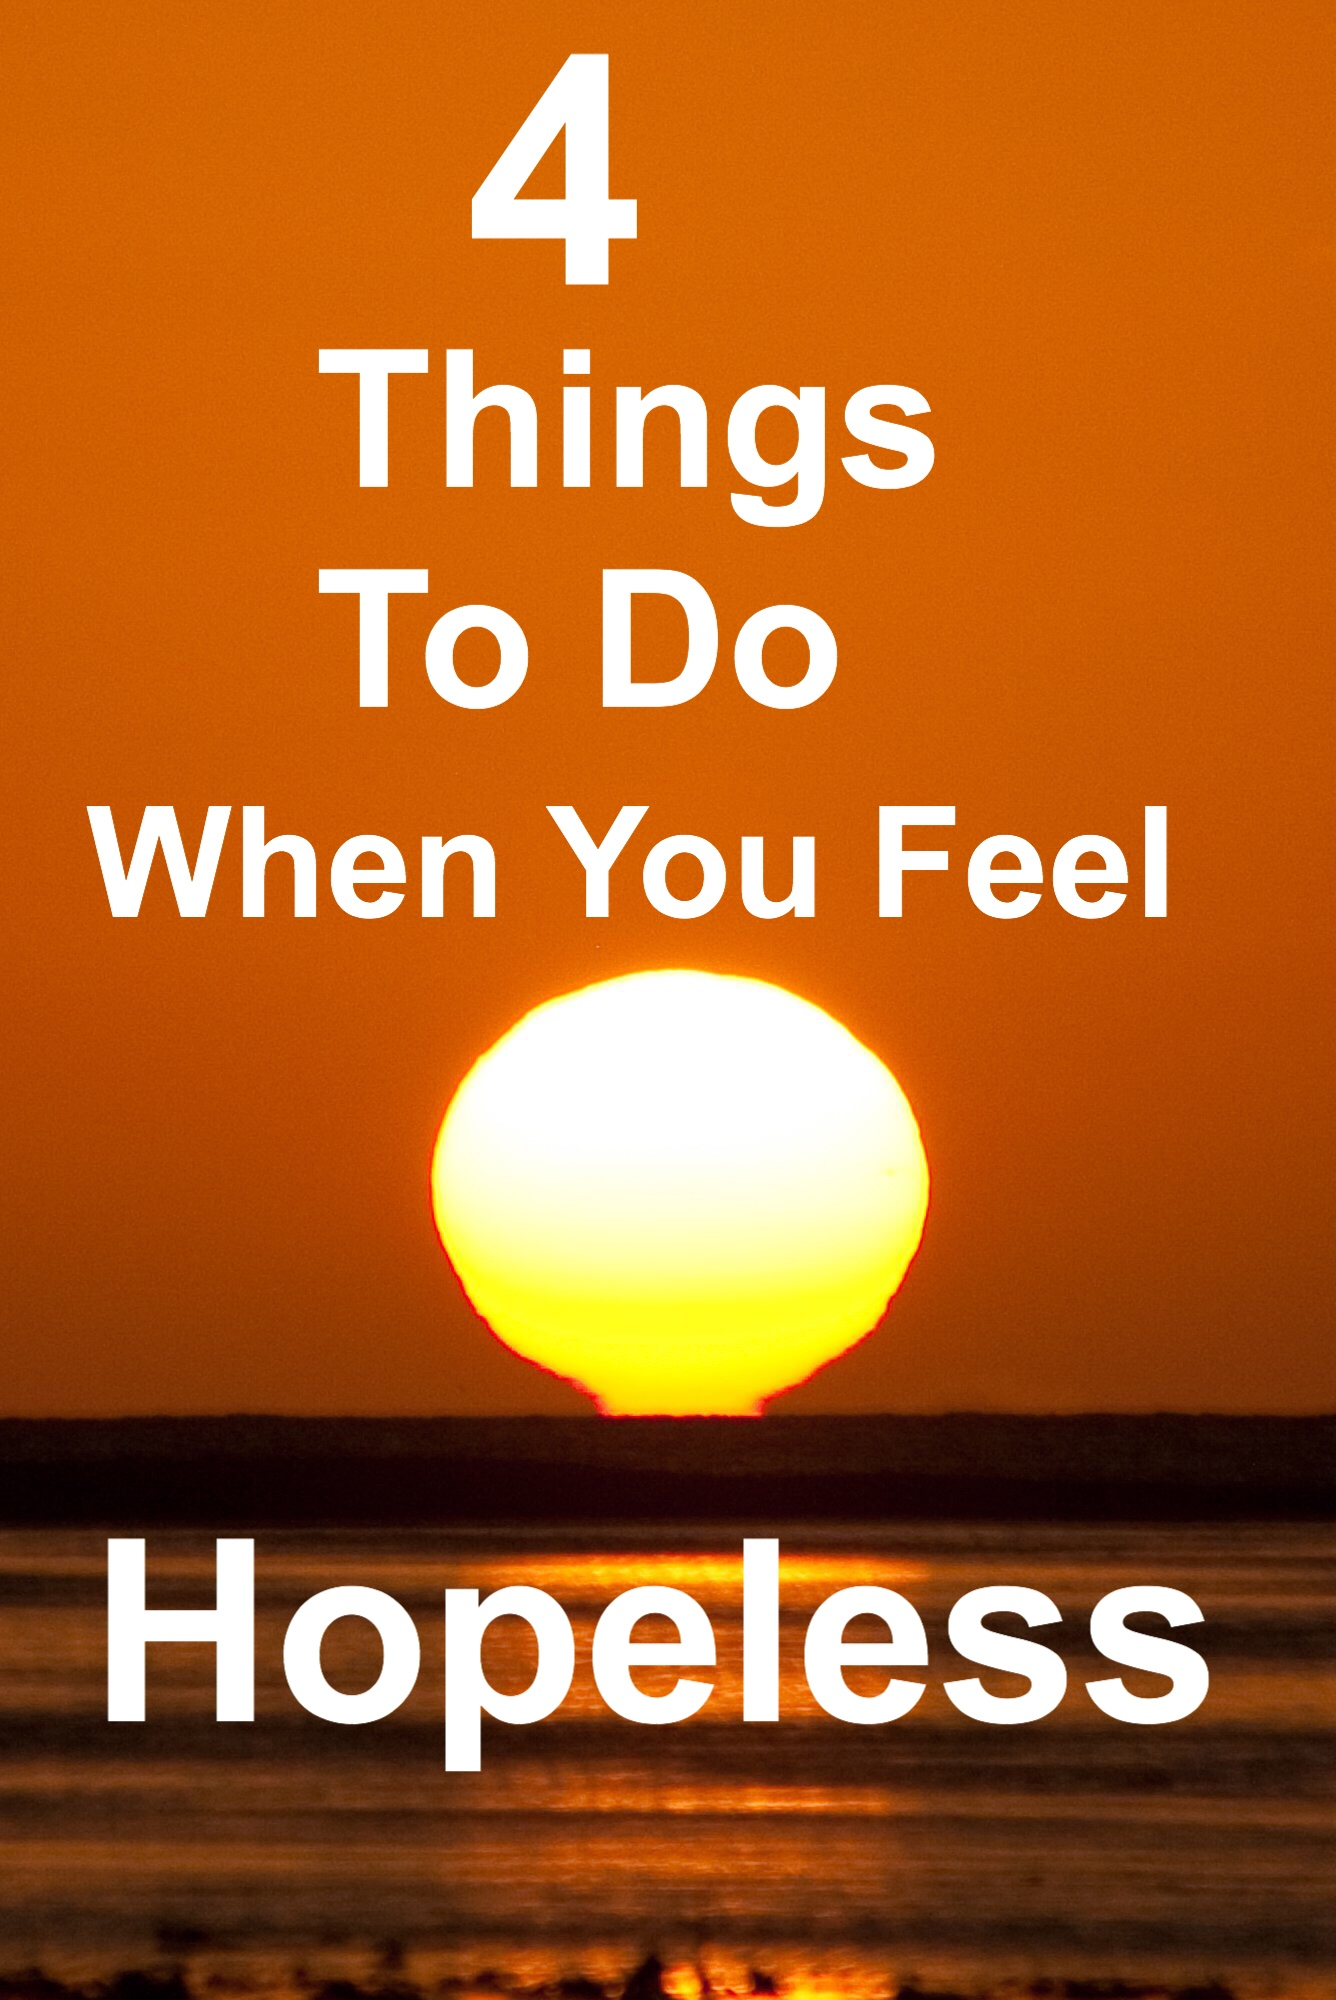 4 Things To Do When You Feel Hopeless pin